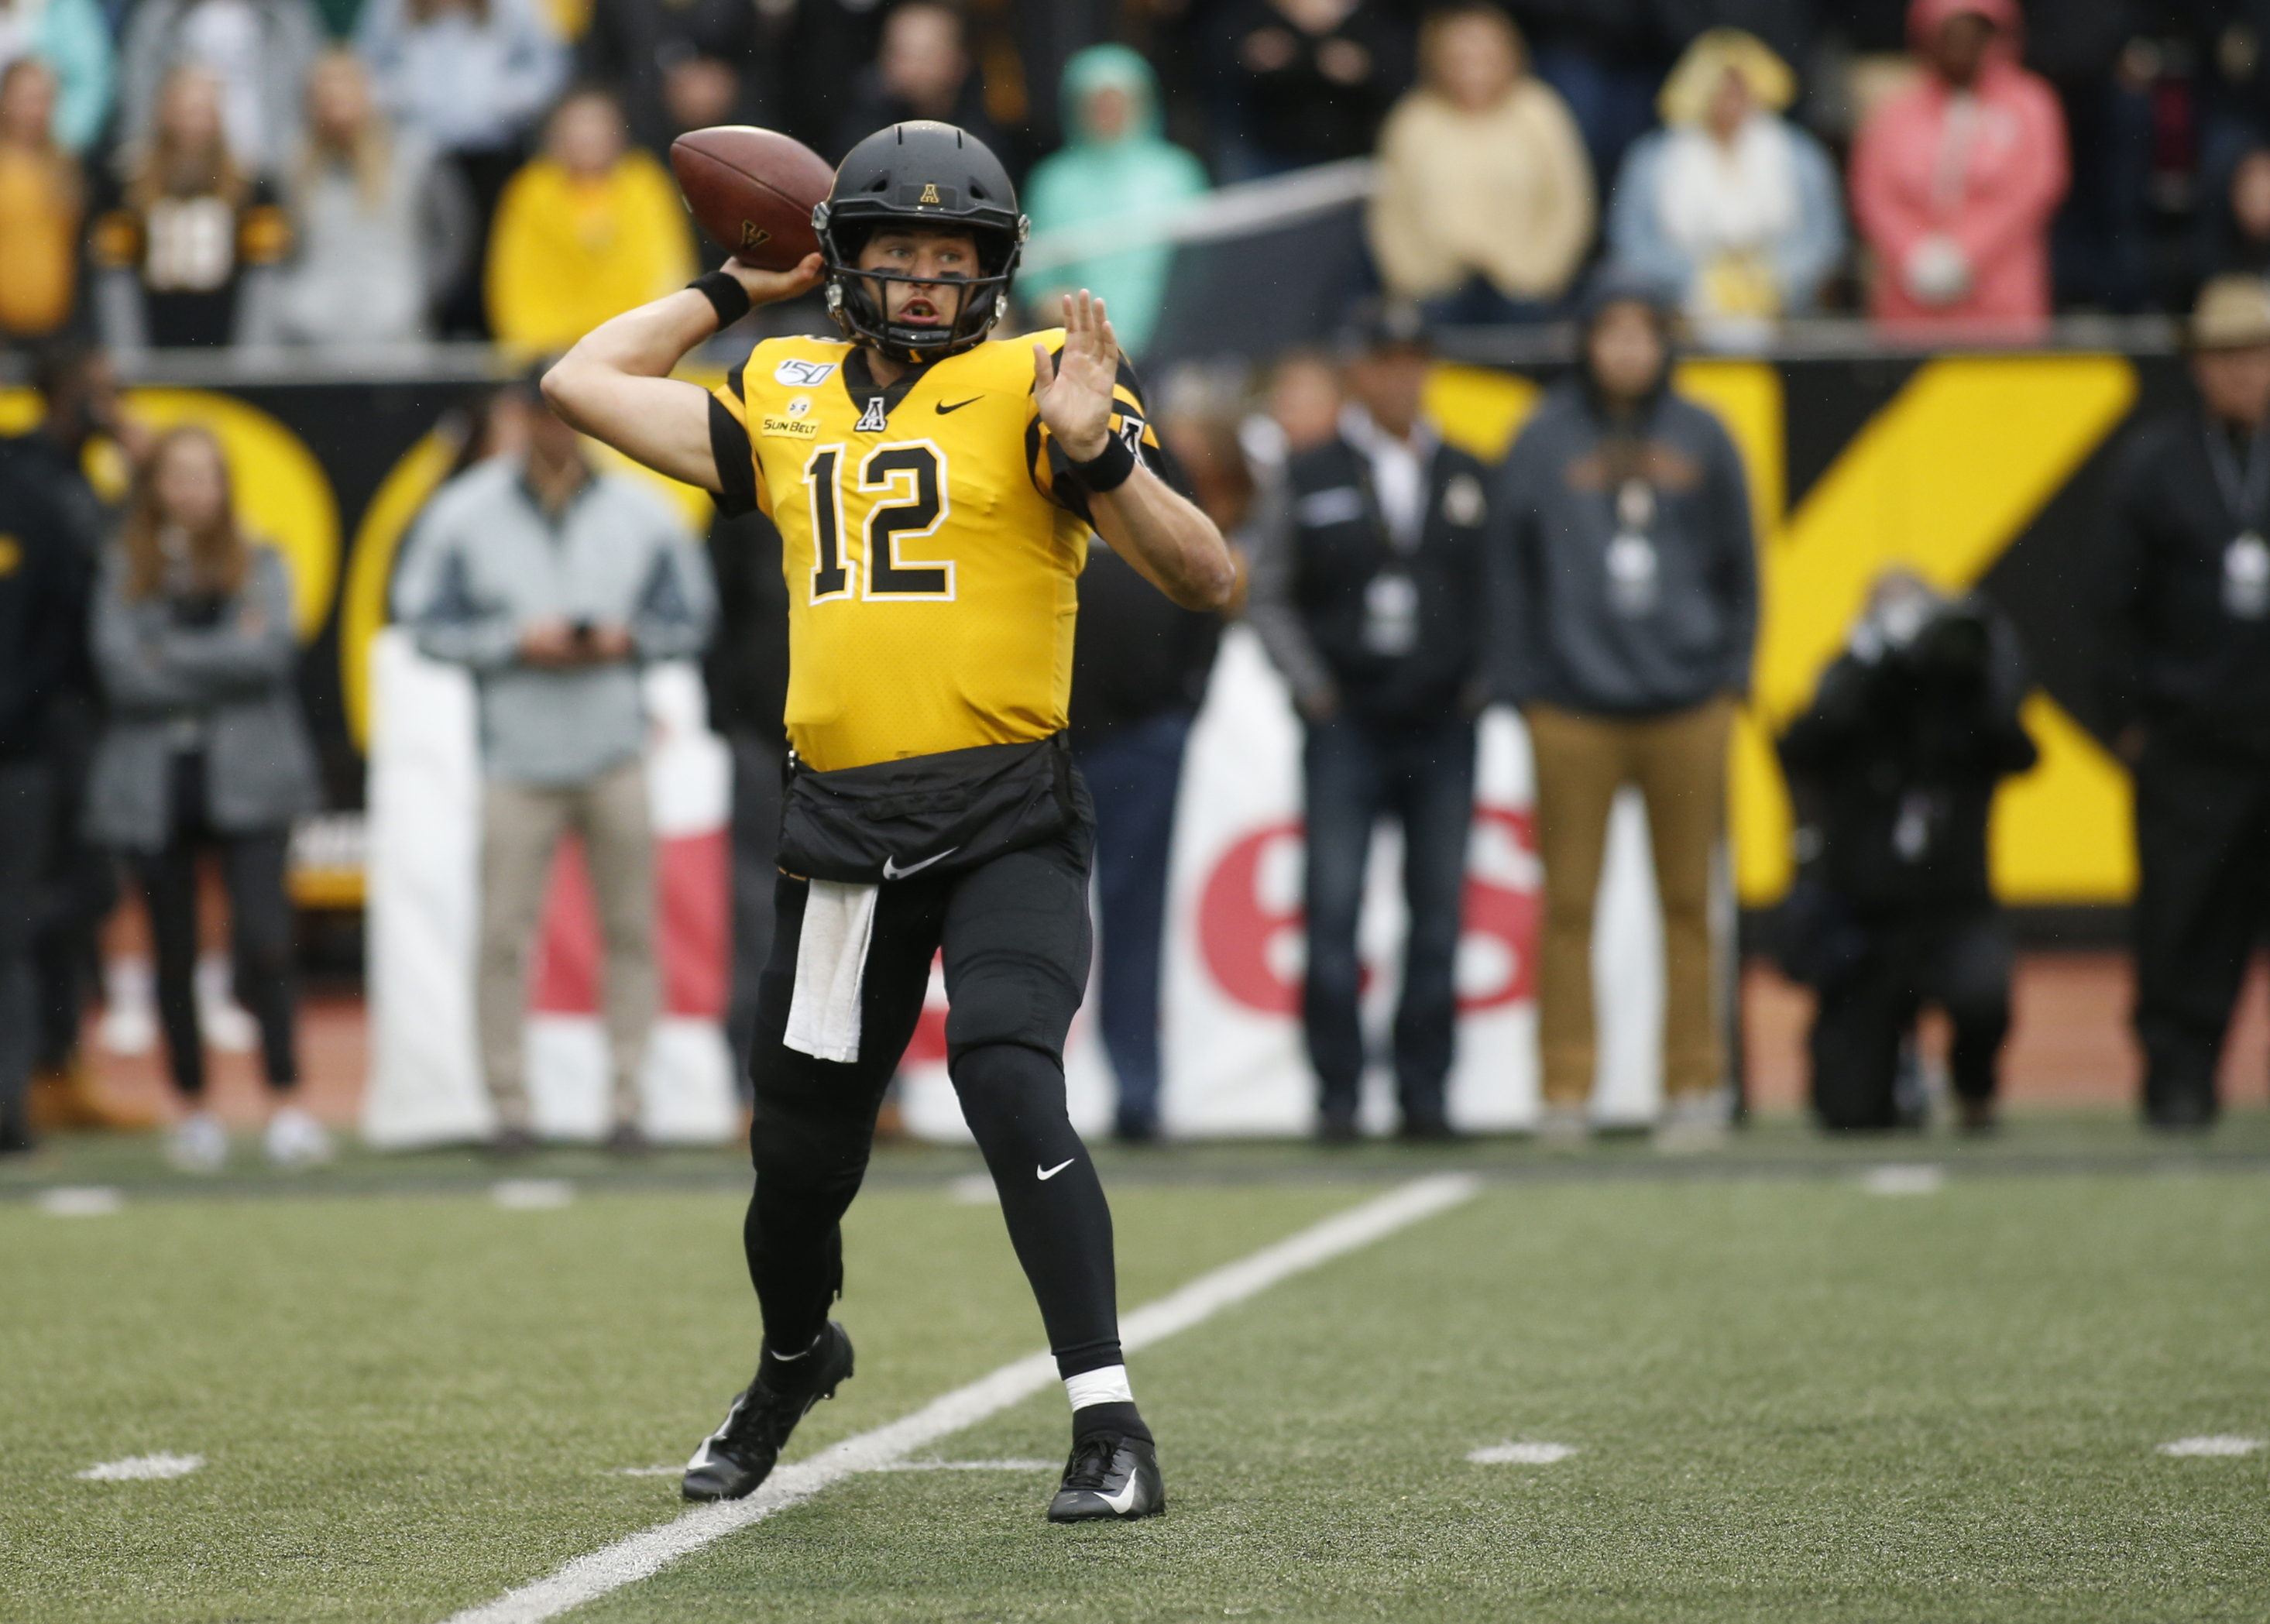 No. 21 Appalachian State visits struggling South Alabama